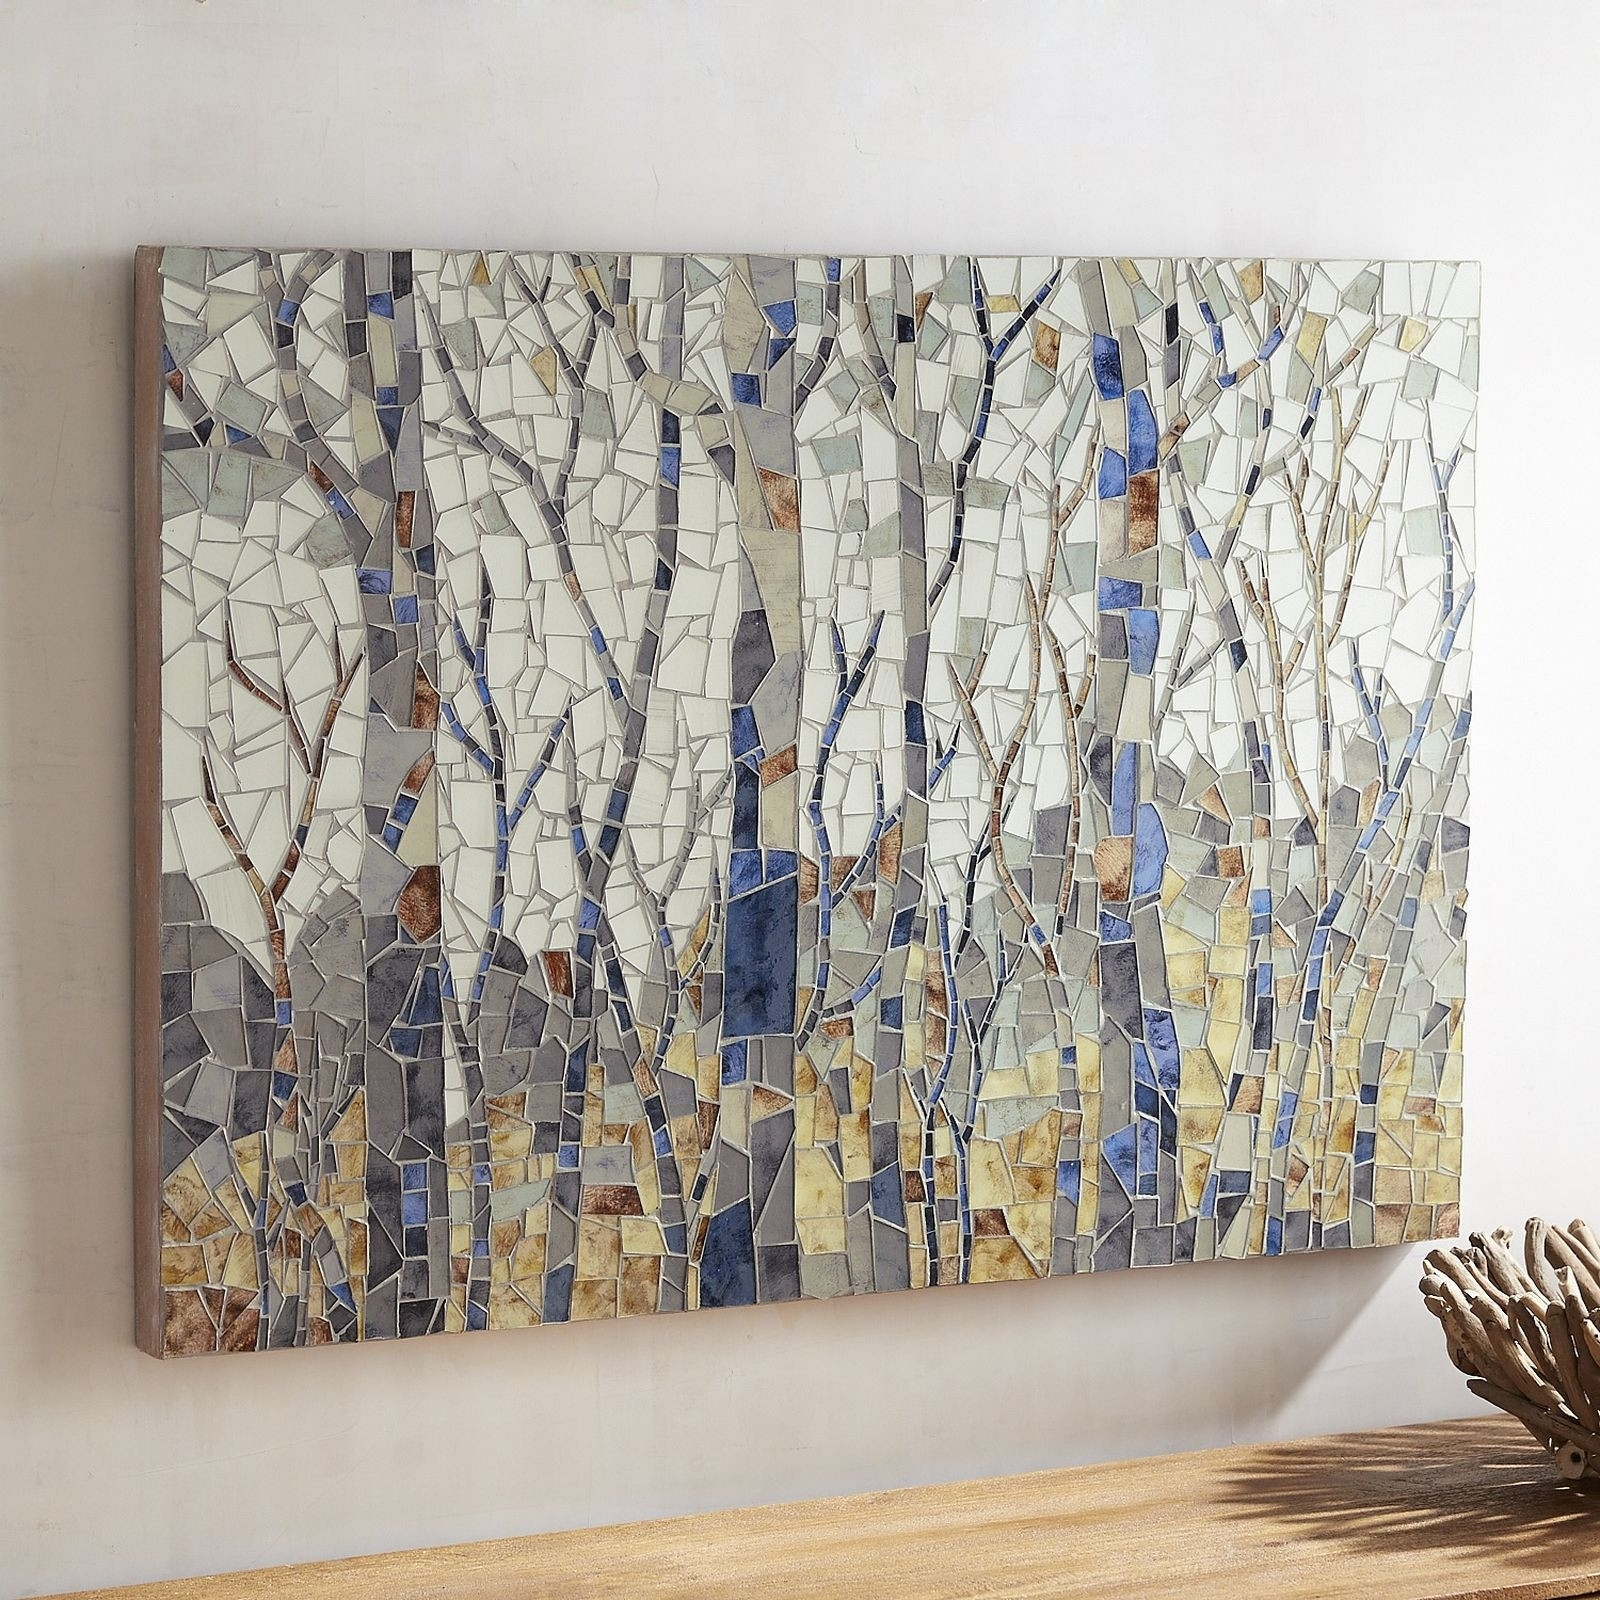 Mosaic Wall Art Simple Best 25 Ideas Pinterest Striking | Realvalue – with regard to Mosaic Wall Art (Image 14 of 20)